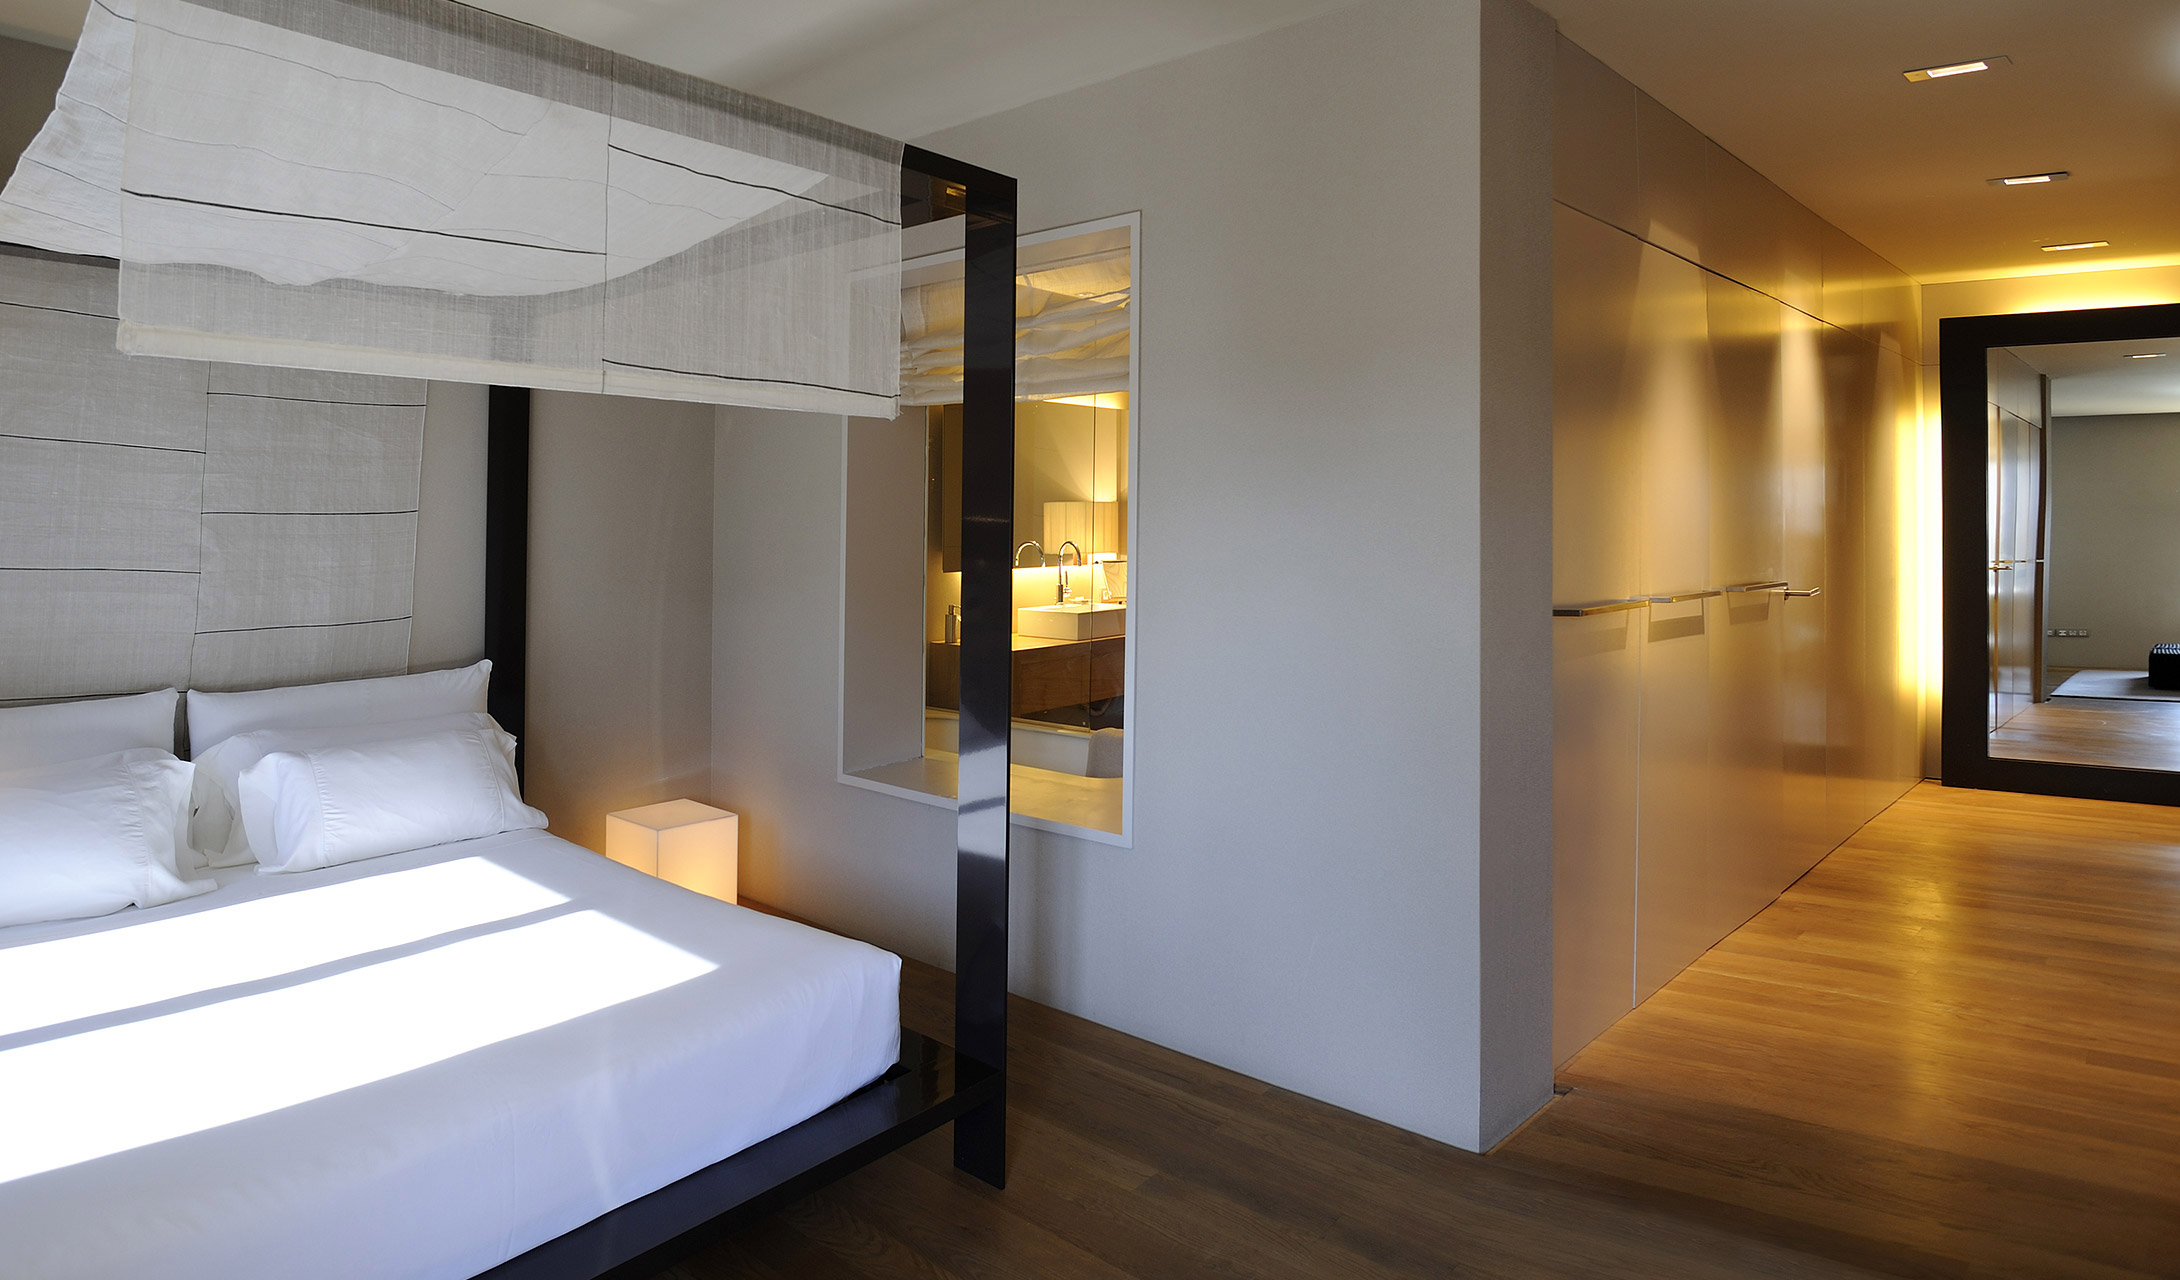 Hotel omm barcelona spain design hotels for Designhotel q